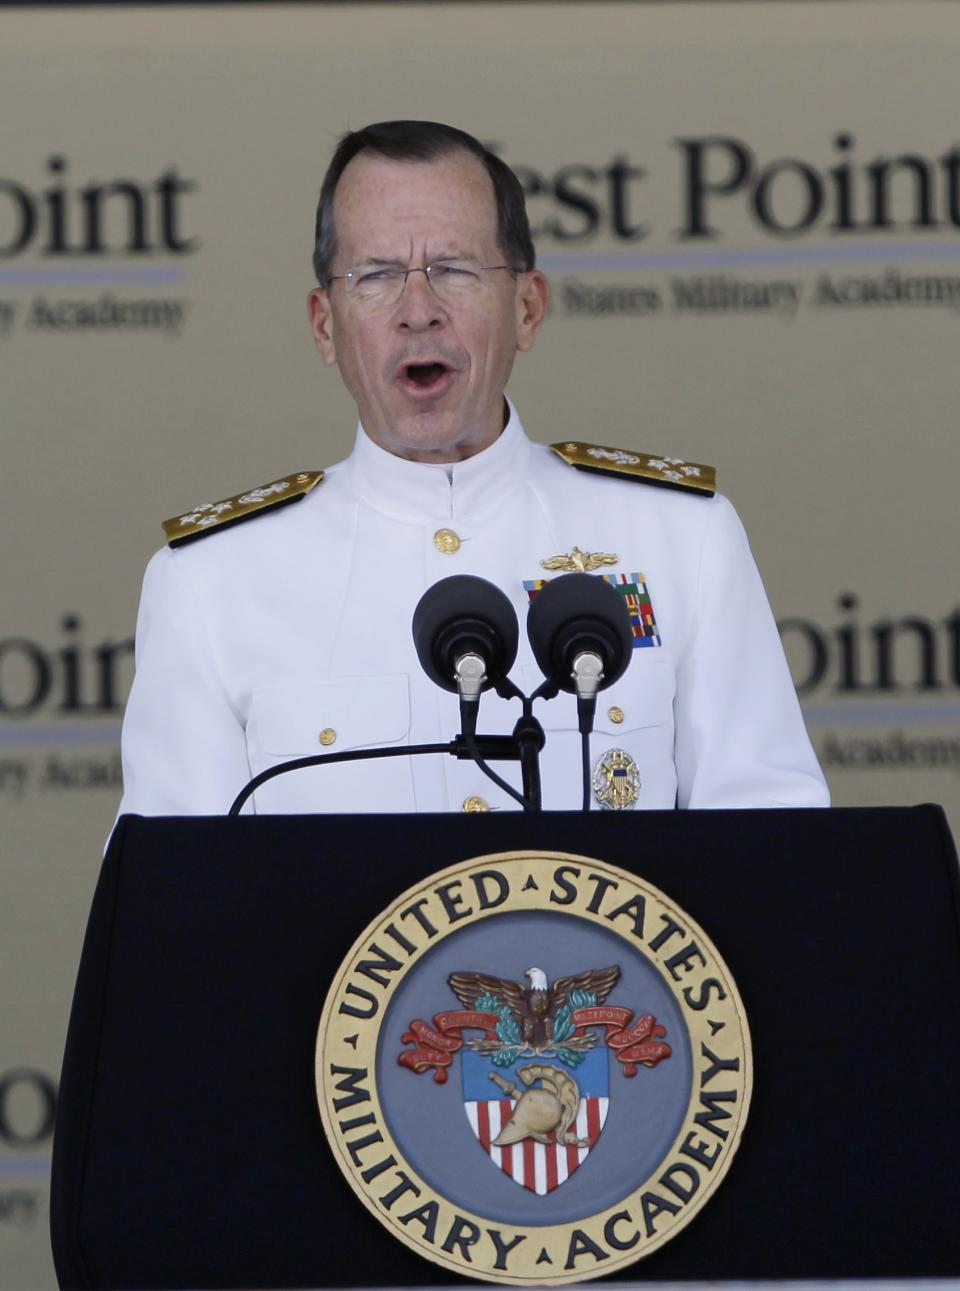 Joint Chiefs Chairman Adm. Mike Mullen speaks during a graduation and commissioning ceremony at the U.S. Military Academy in West Point, N.Y., on Saturday, May 21, 2011.   (AP Photo/Mike Groll)